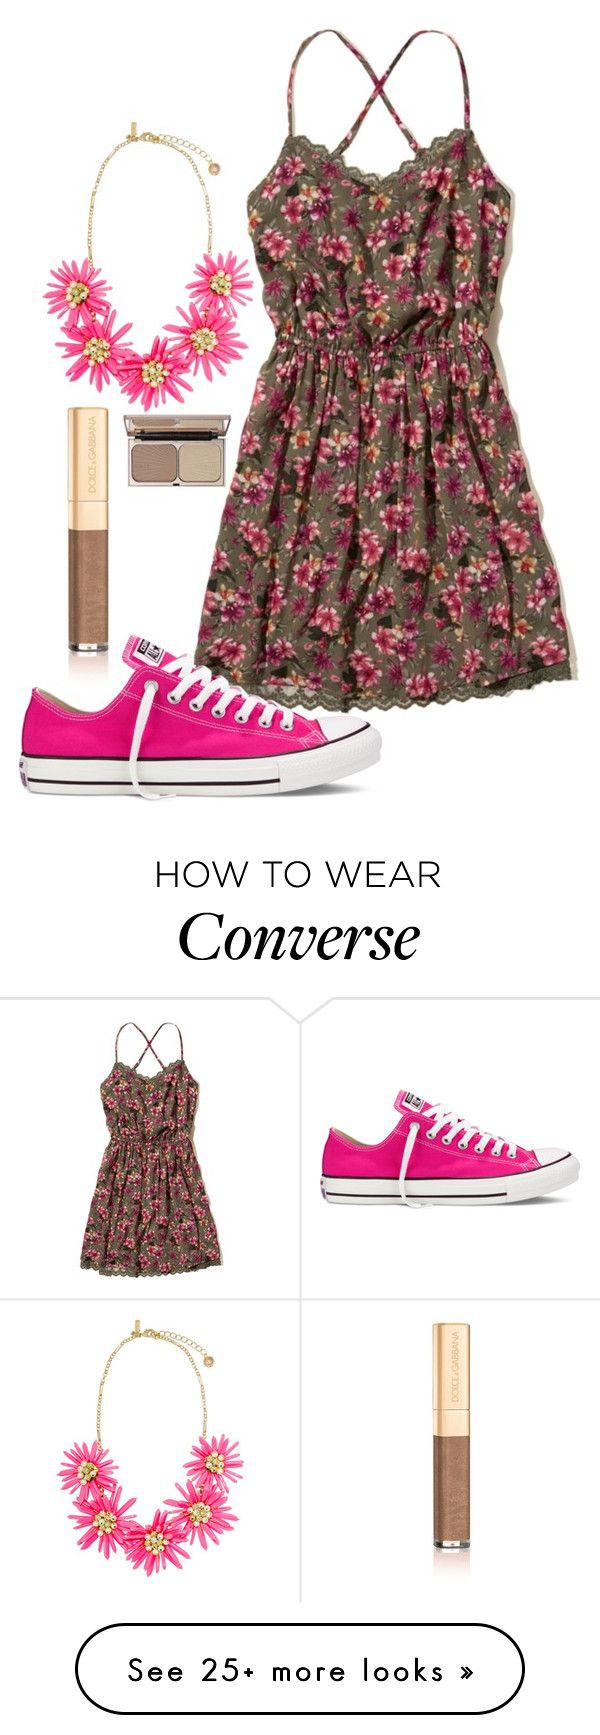 """Good Morning"" by i-dont-want-to-go on Polyvore featuring Hollister Co., Converse, Dolce&Gabbana and Charlotte Tilbury"